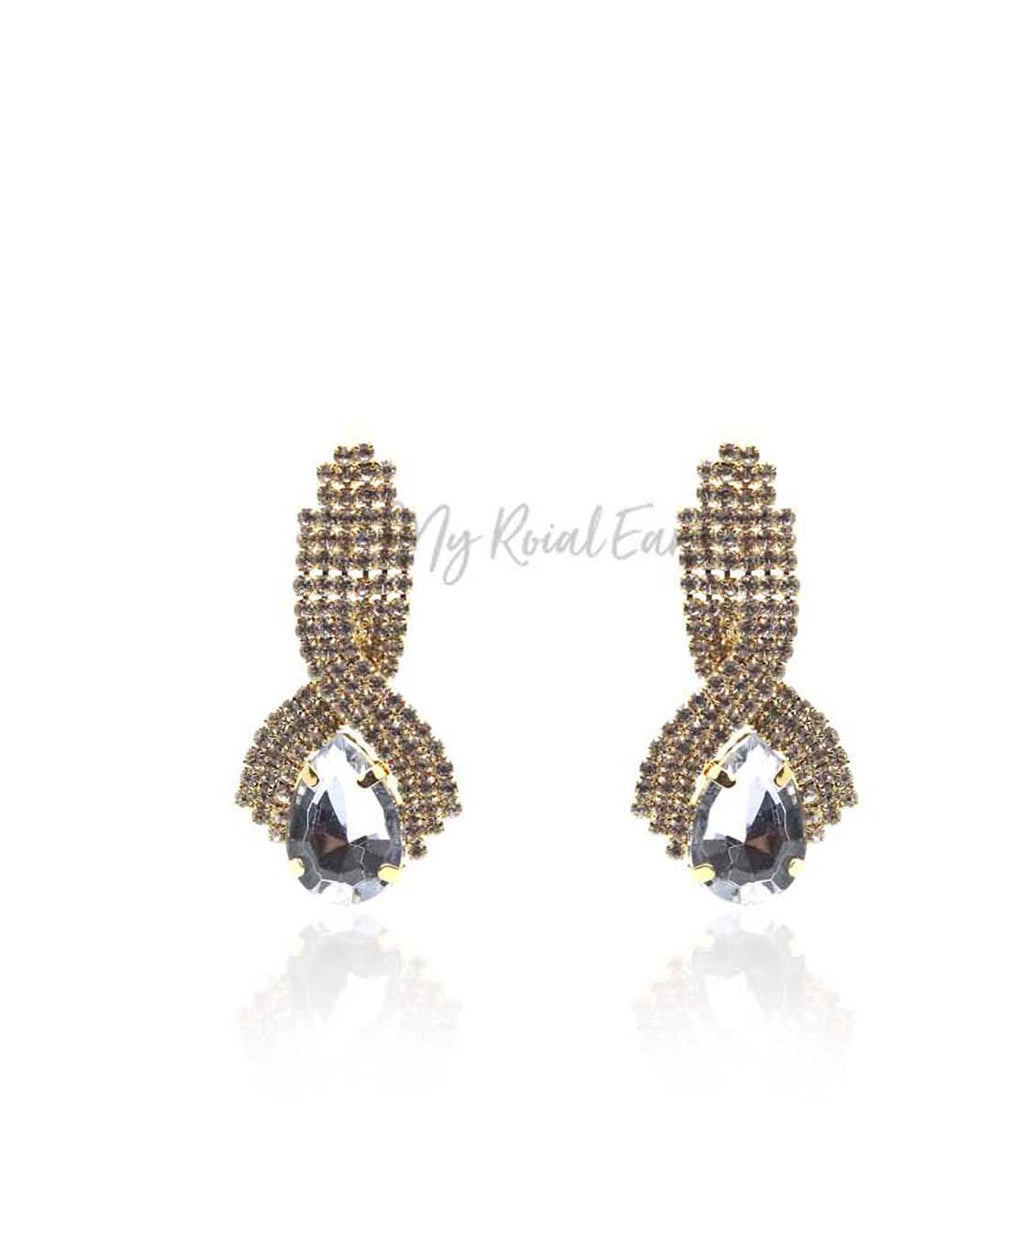 Q.Mia-luxurious gold-plated crystal stone drop bridal earrings - My Roial Ears LTD